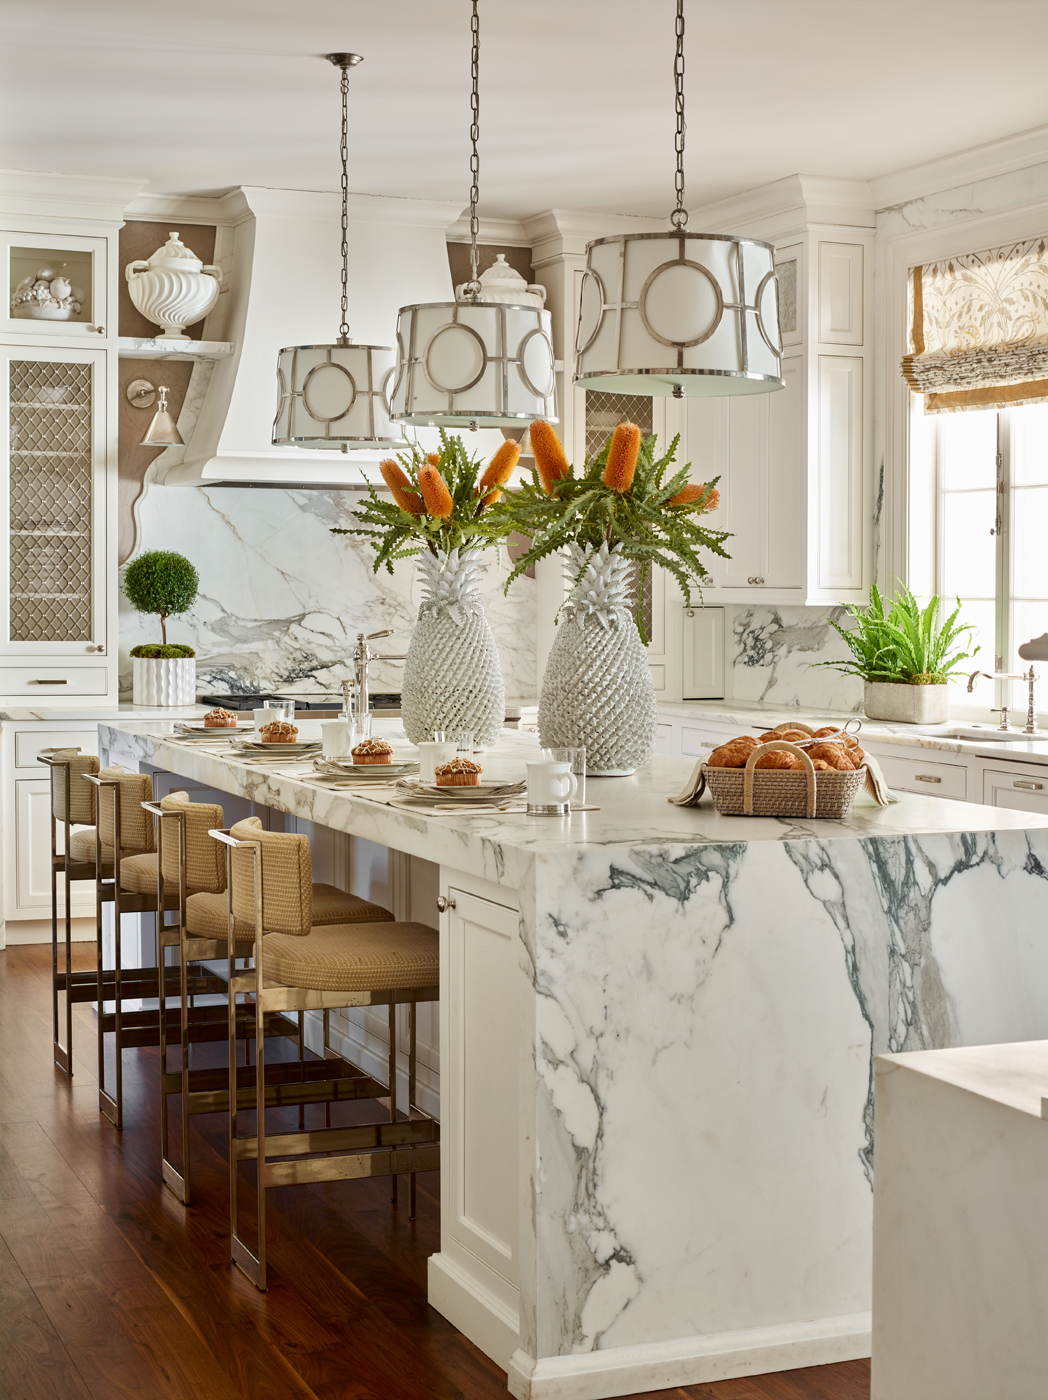 Custom white kitchen with Calacatta Borghini marble slabs and woven leather stools by Powell & Bonnell | Savage Interior Design